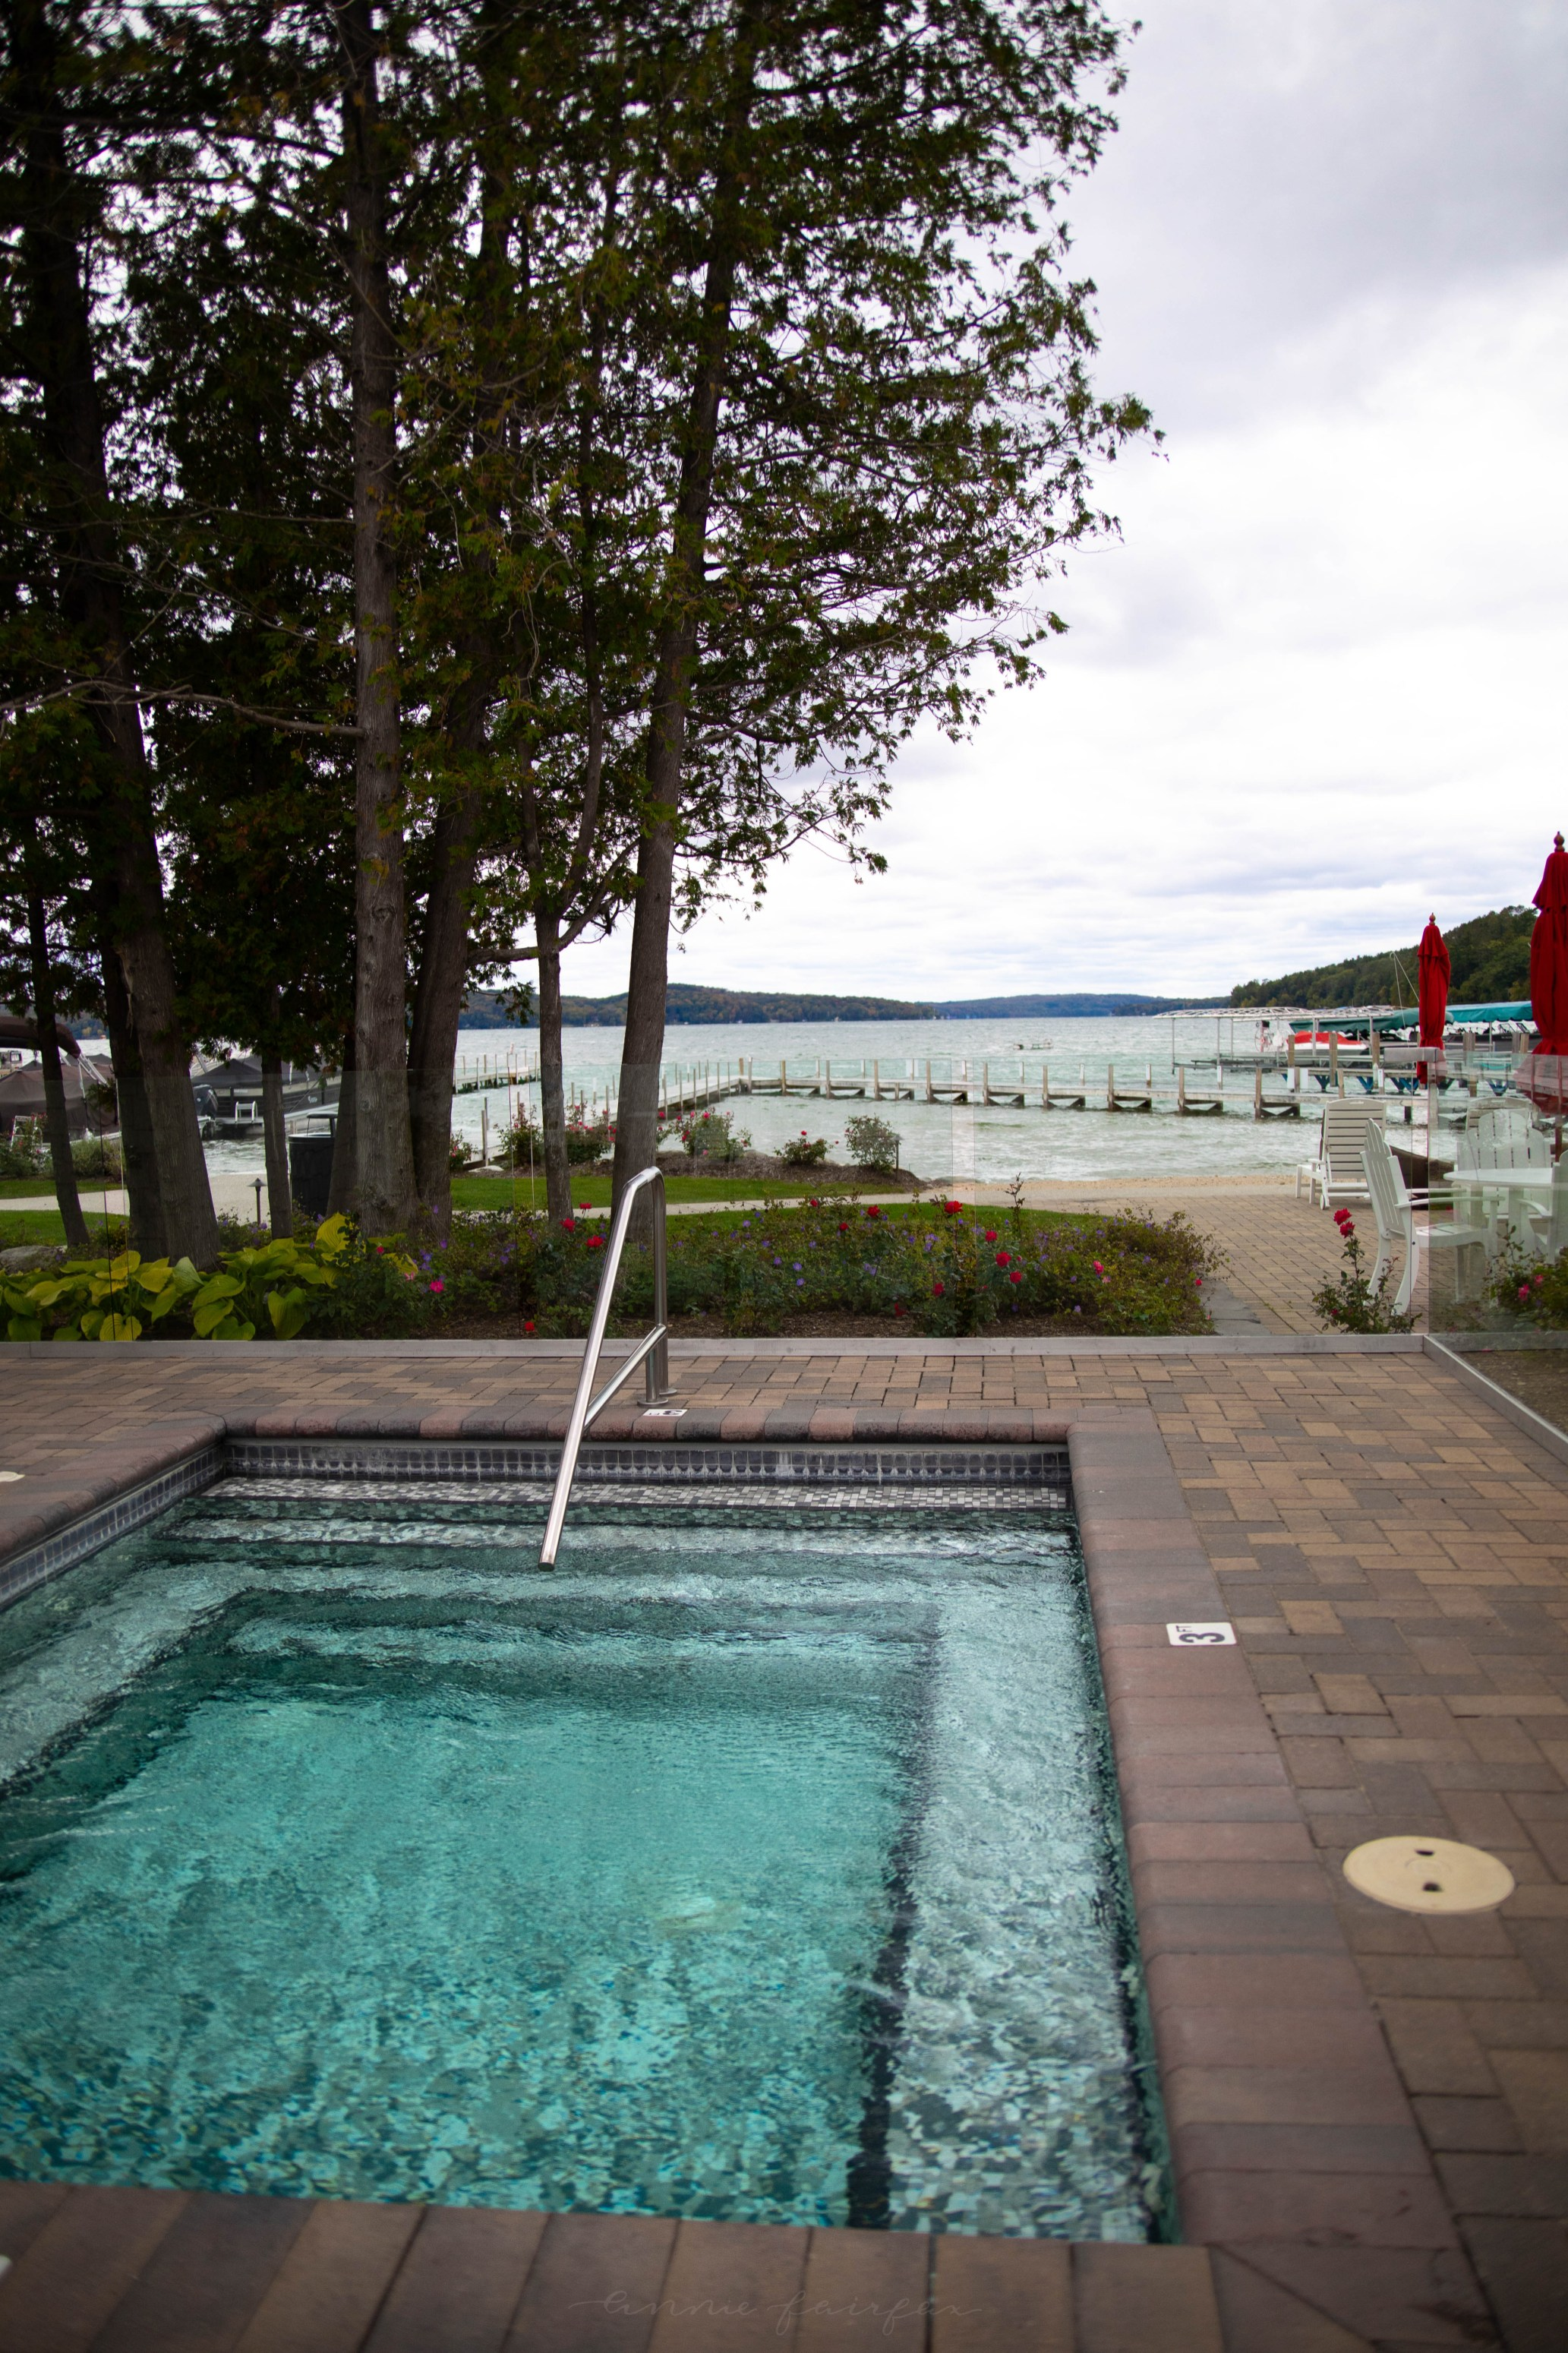 Hotel Walloon Hot Tub on the Lake